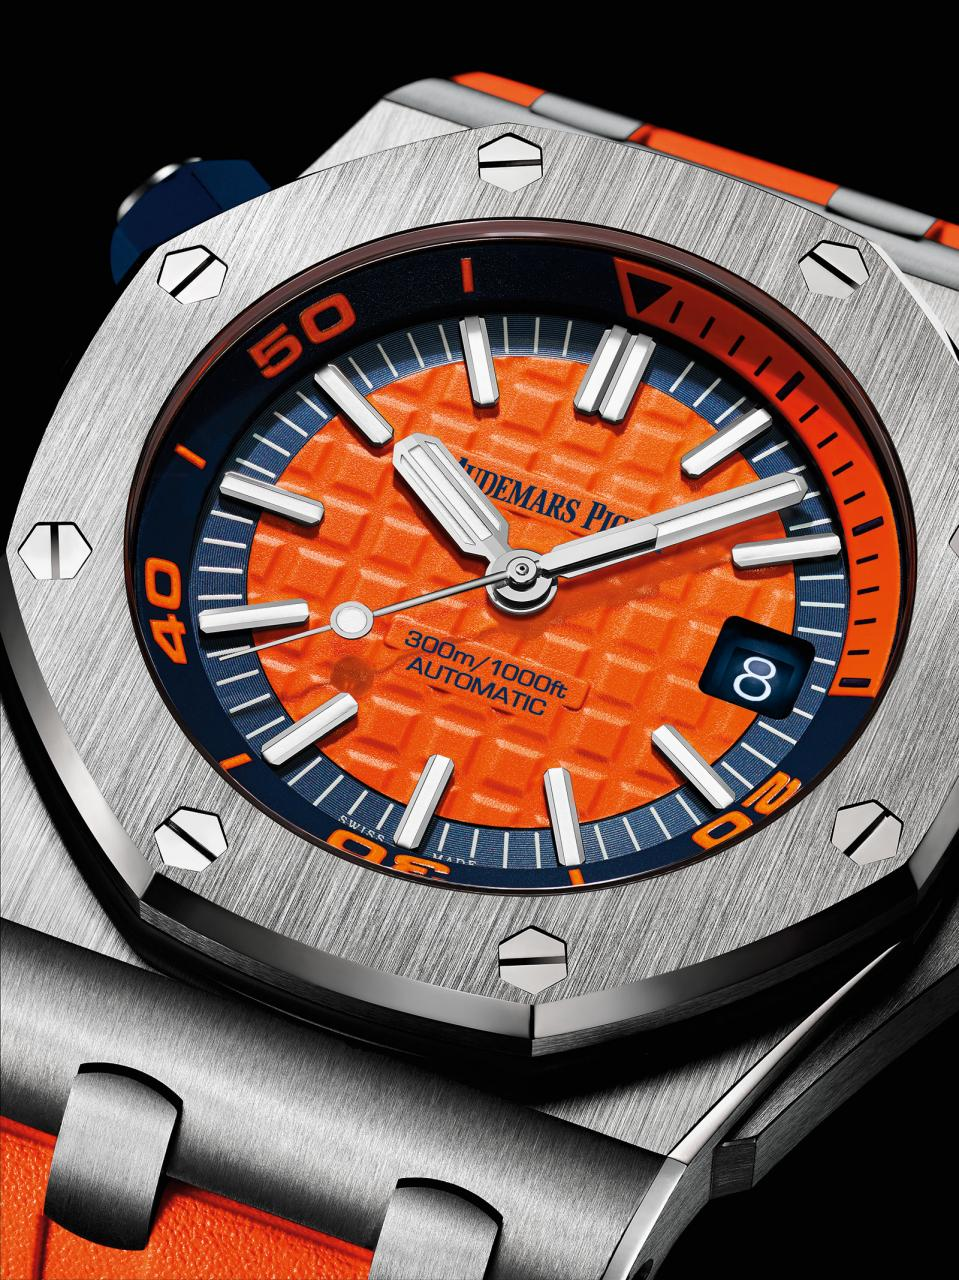 Audemars Piguet Royal Oak Offshore Diver orange